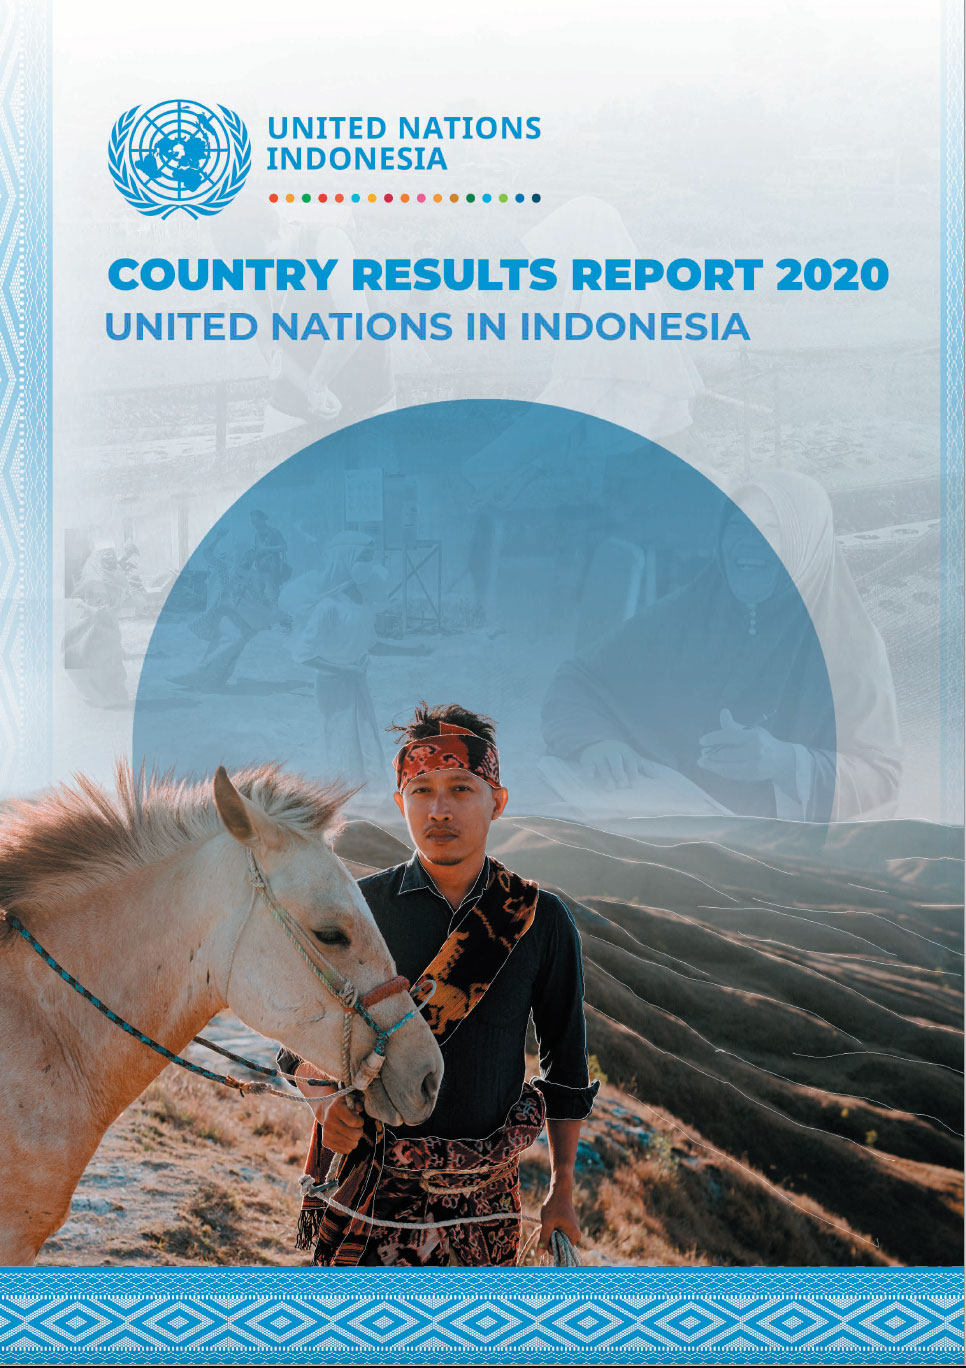 United Nations in Indonesia Country Results Report 2020